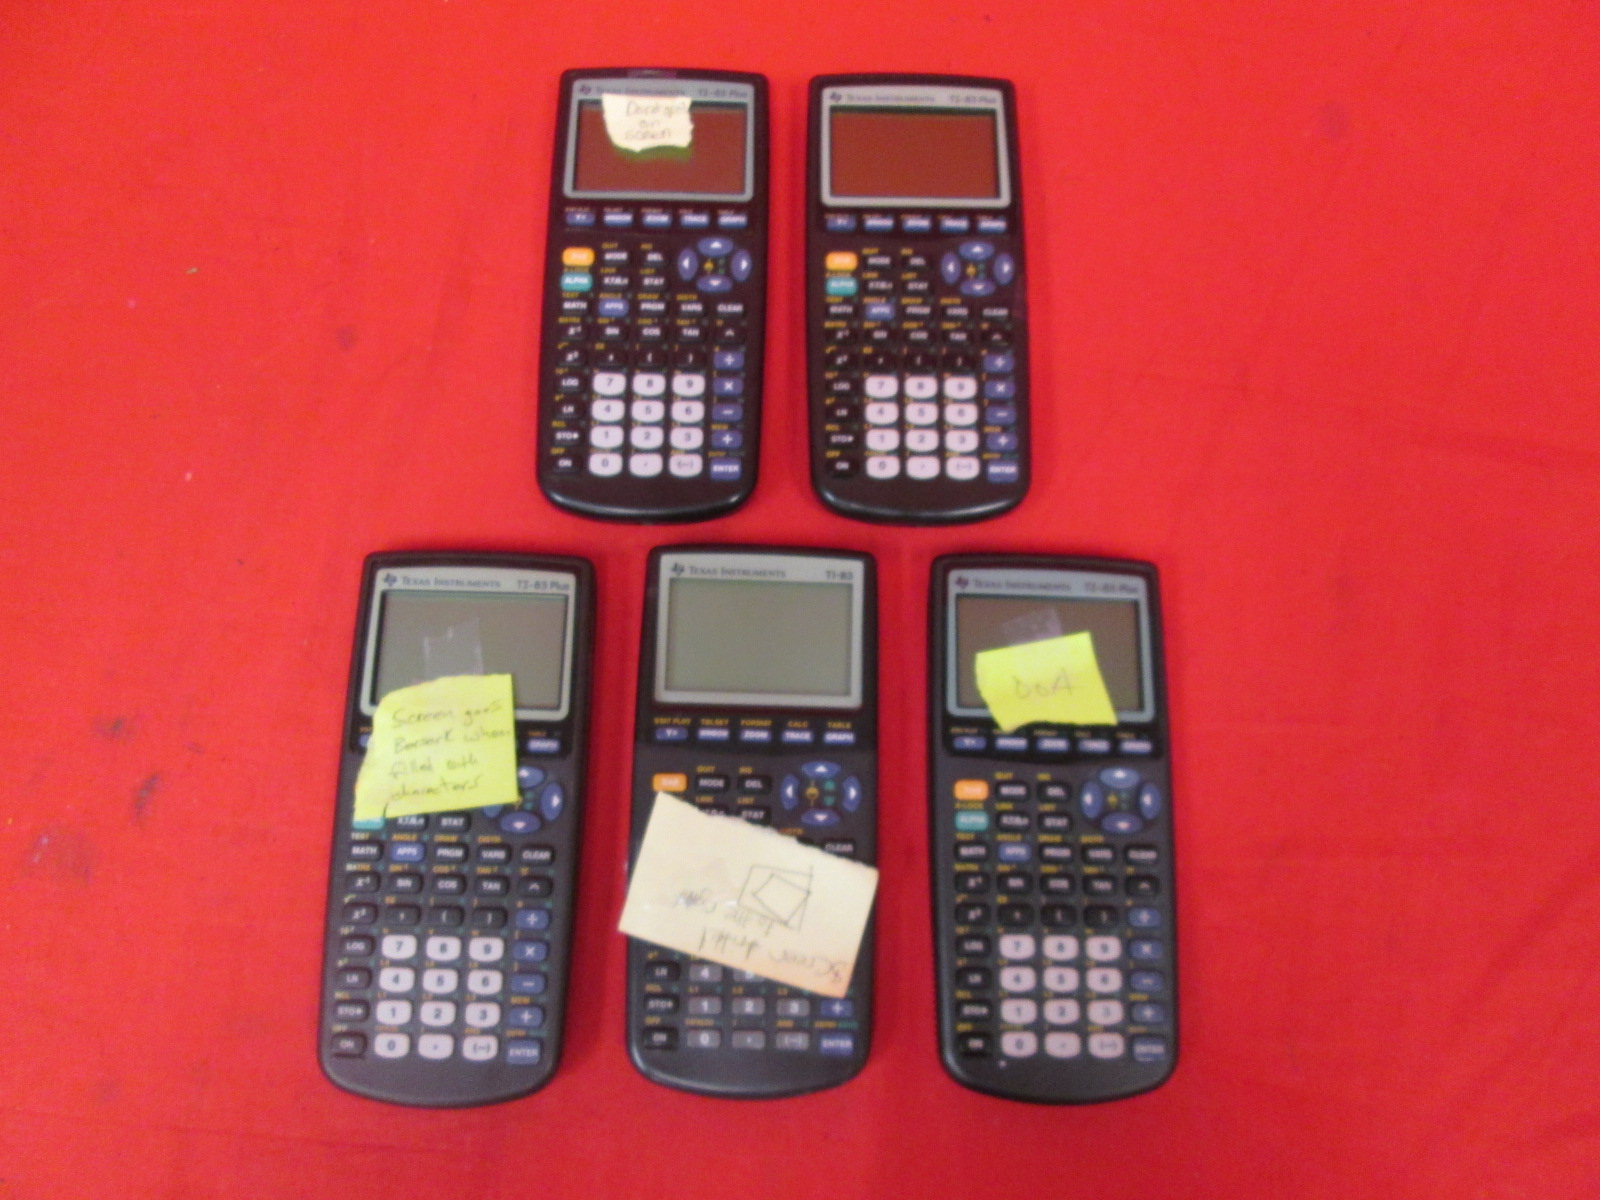 Broken Lot Of 5 Texas Instruments TI-83 Plus Graphing Calculators